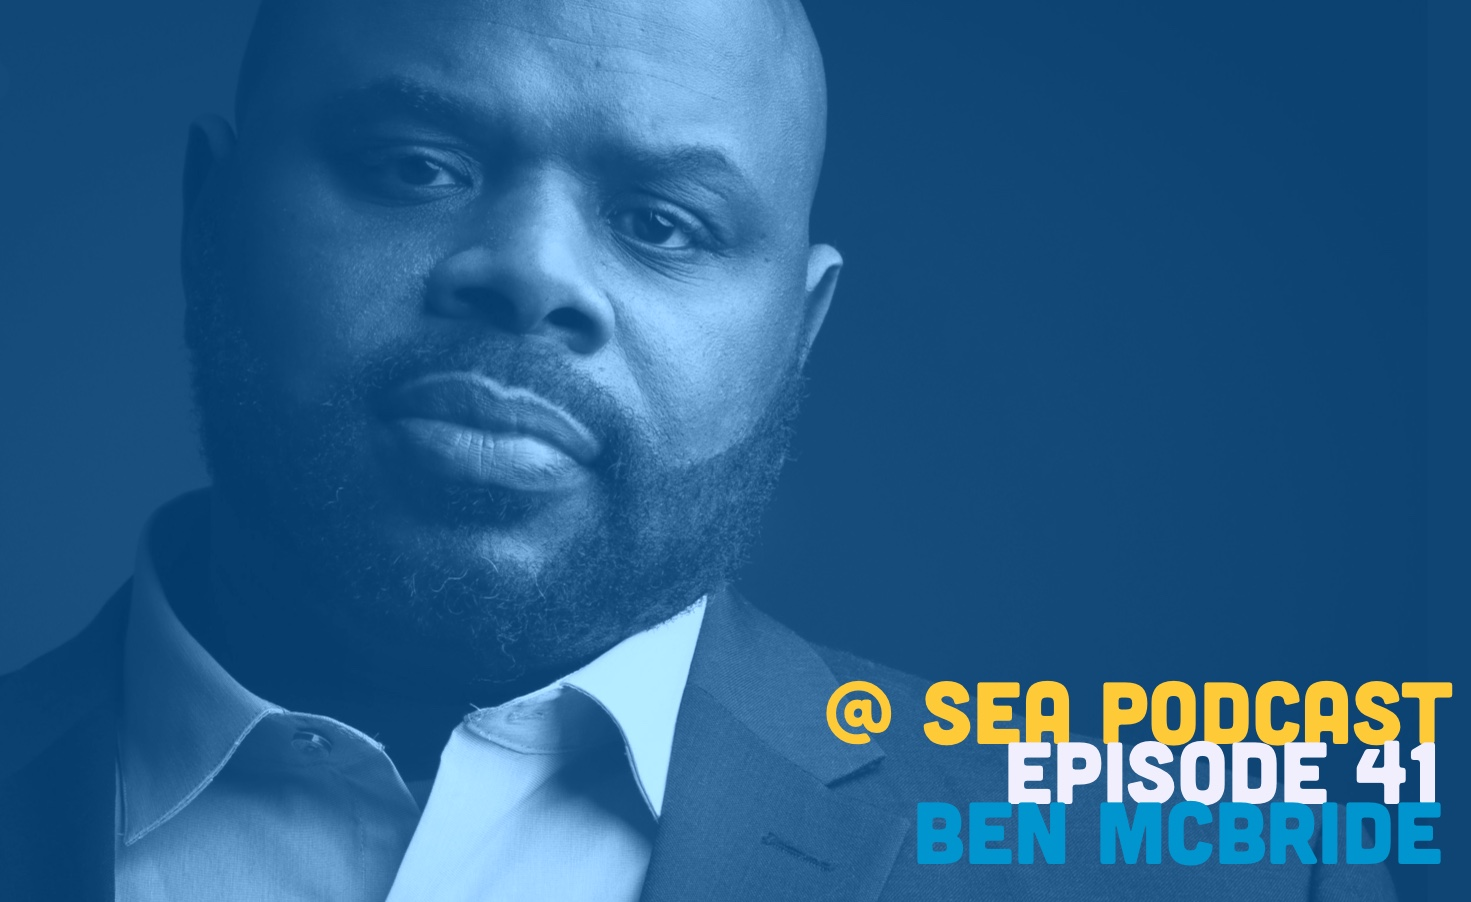 @ Sea Podcast #41: Ben McBride